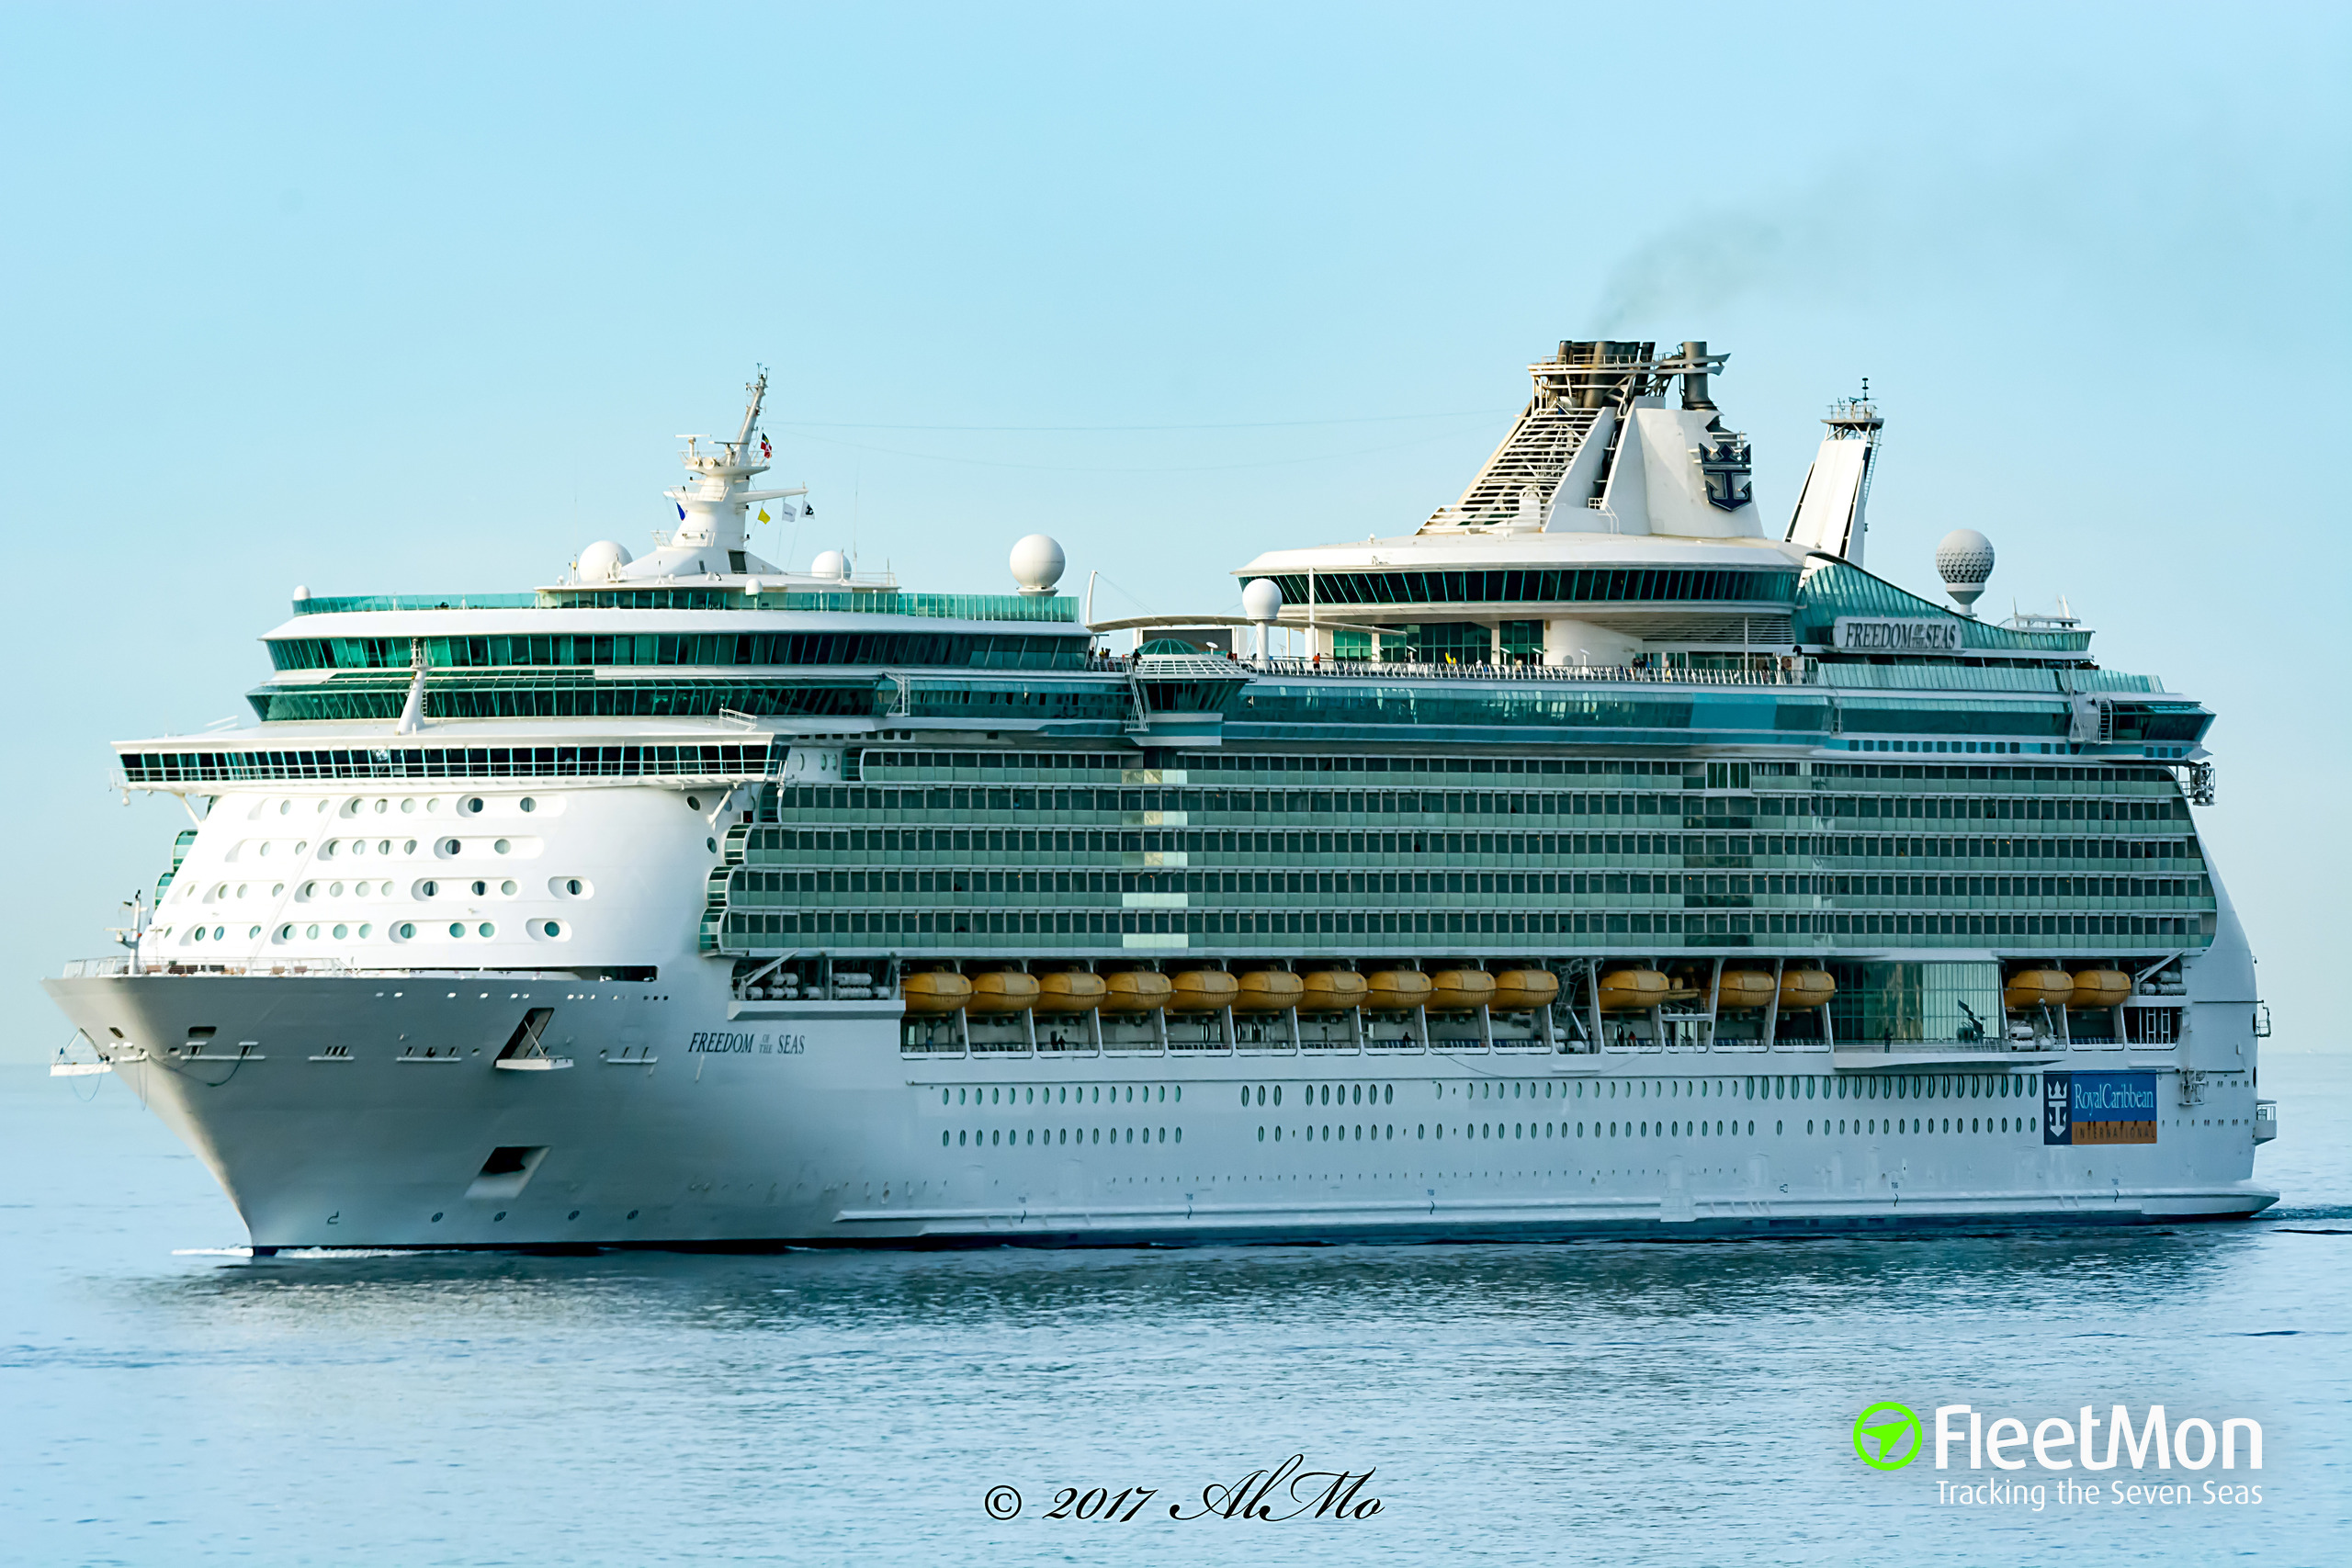 Photo Of FREEDOM OF THE SEAS IMO MMSI - Freedom of the seas